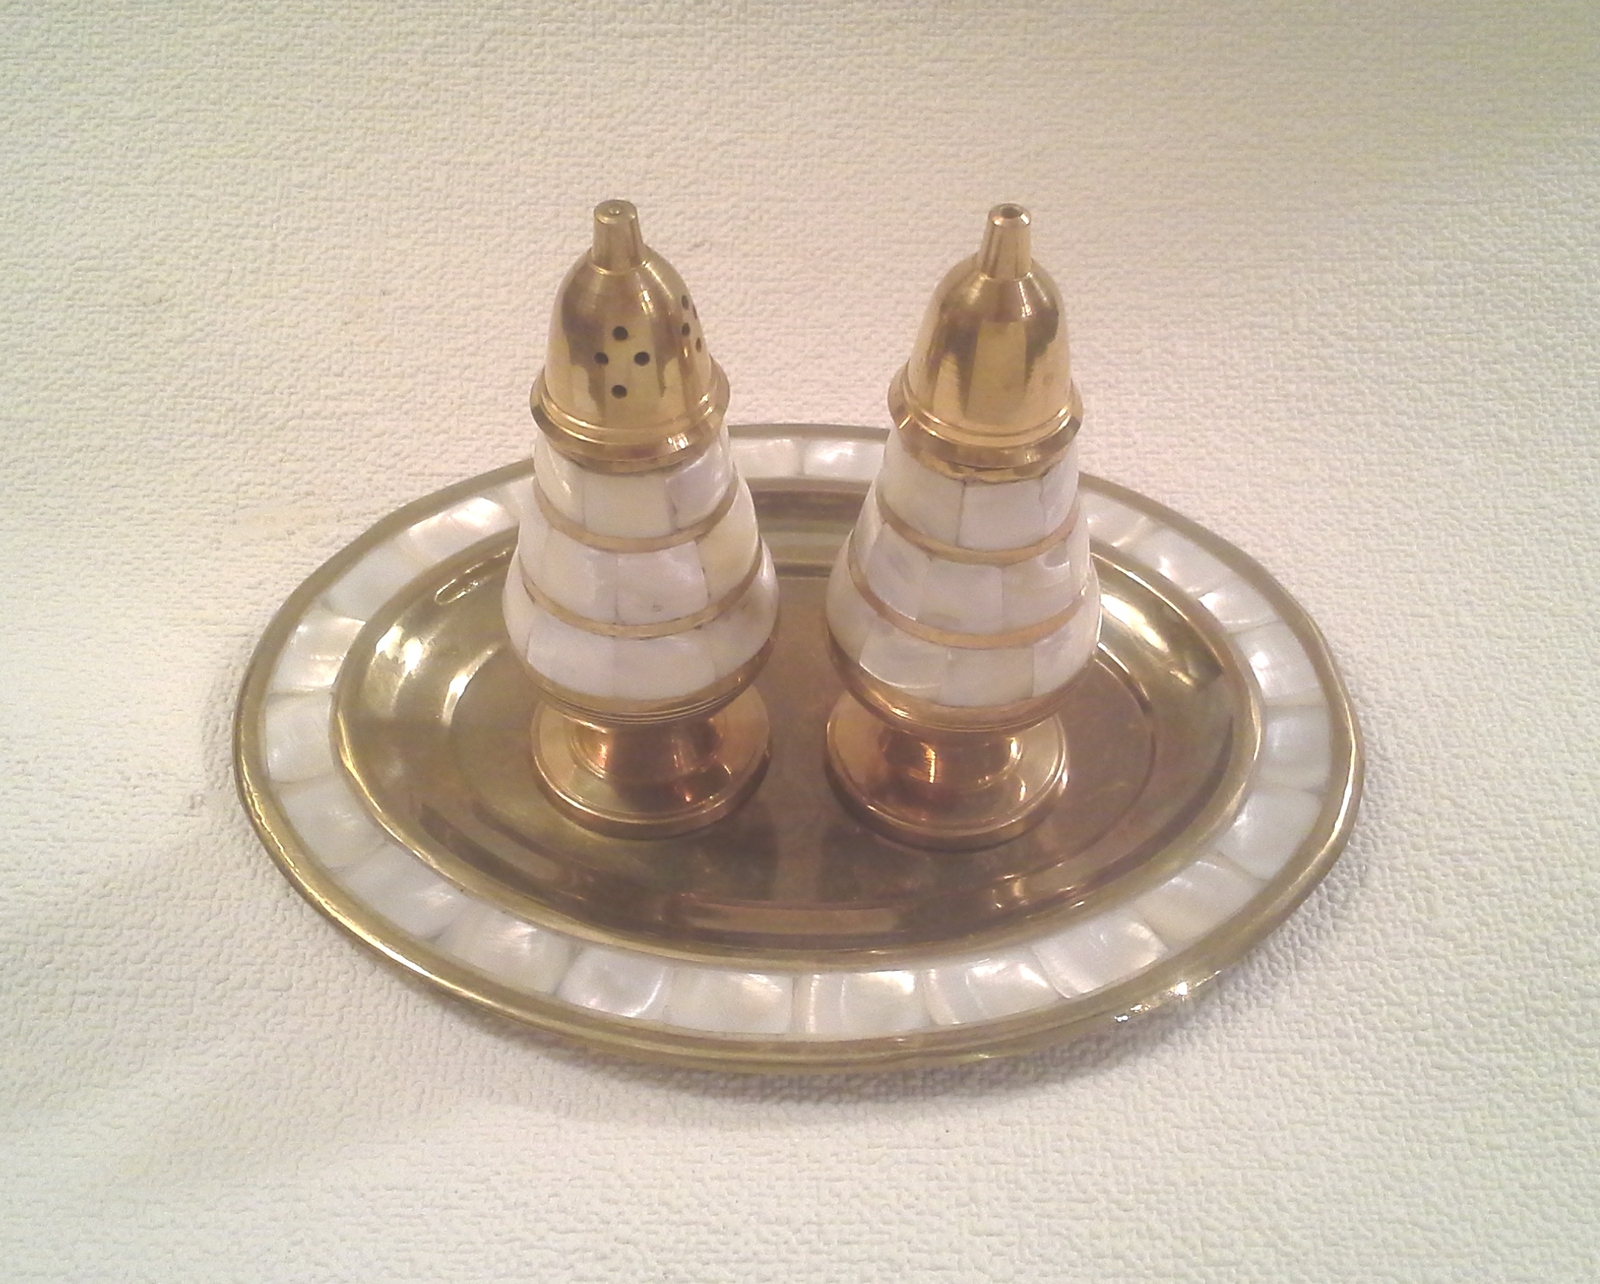 Vintage Brass Salt and Pepper Shaker and Tray  with Mother of Pearl Accents